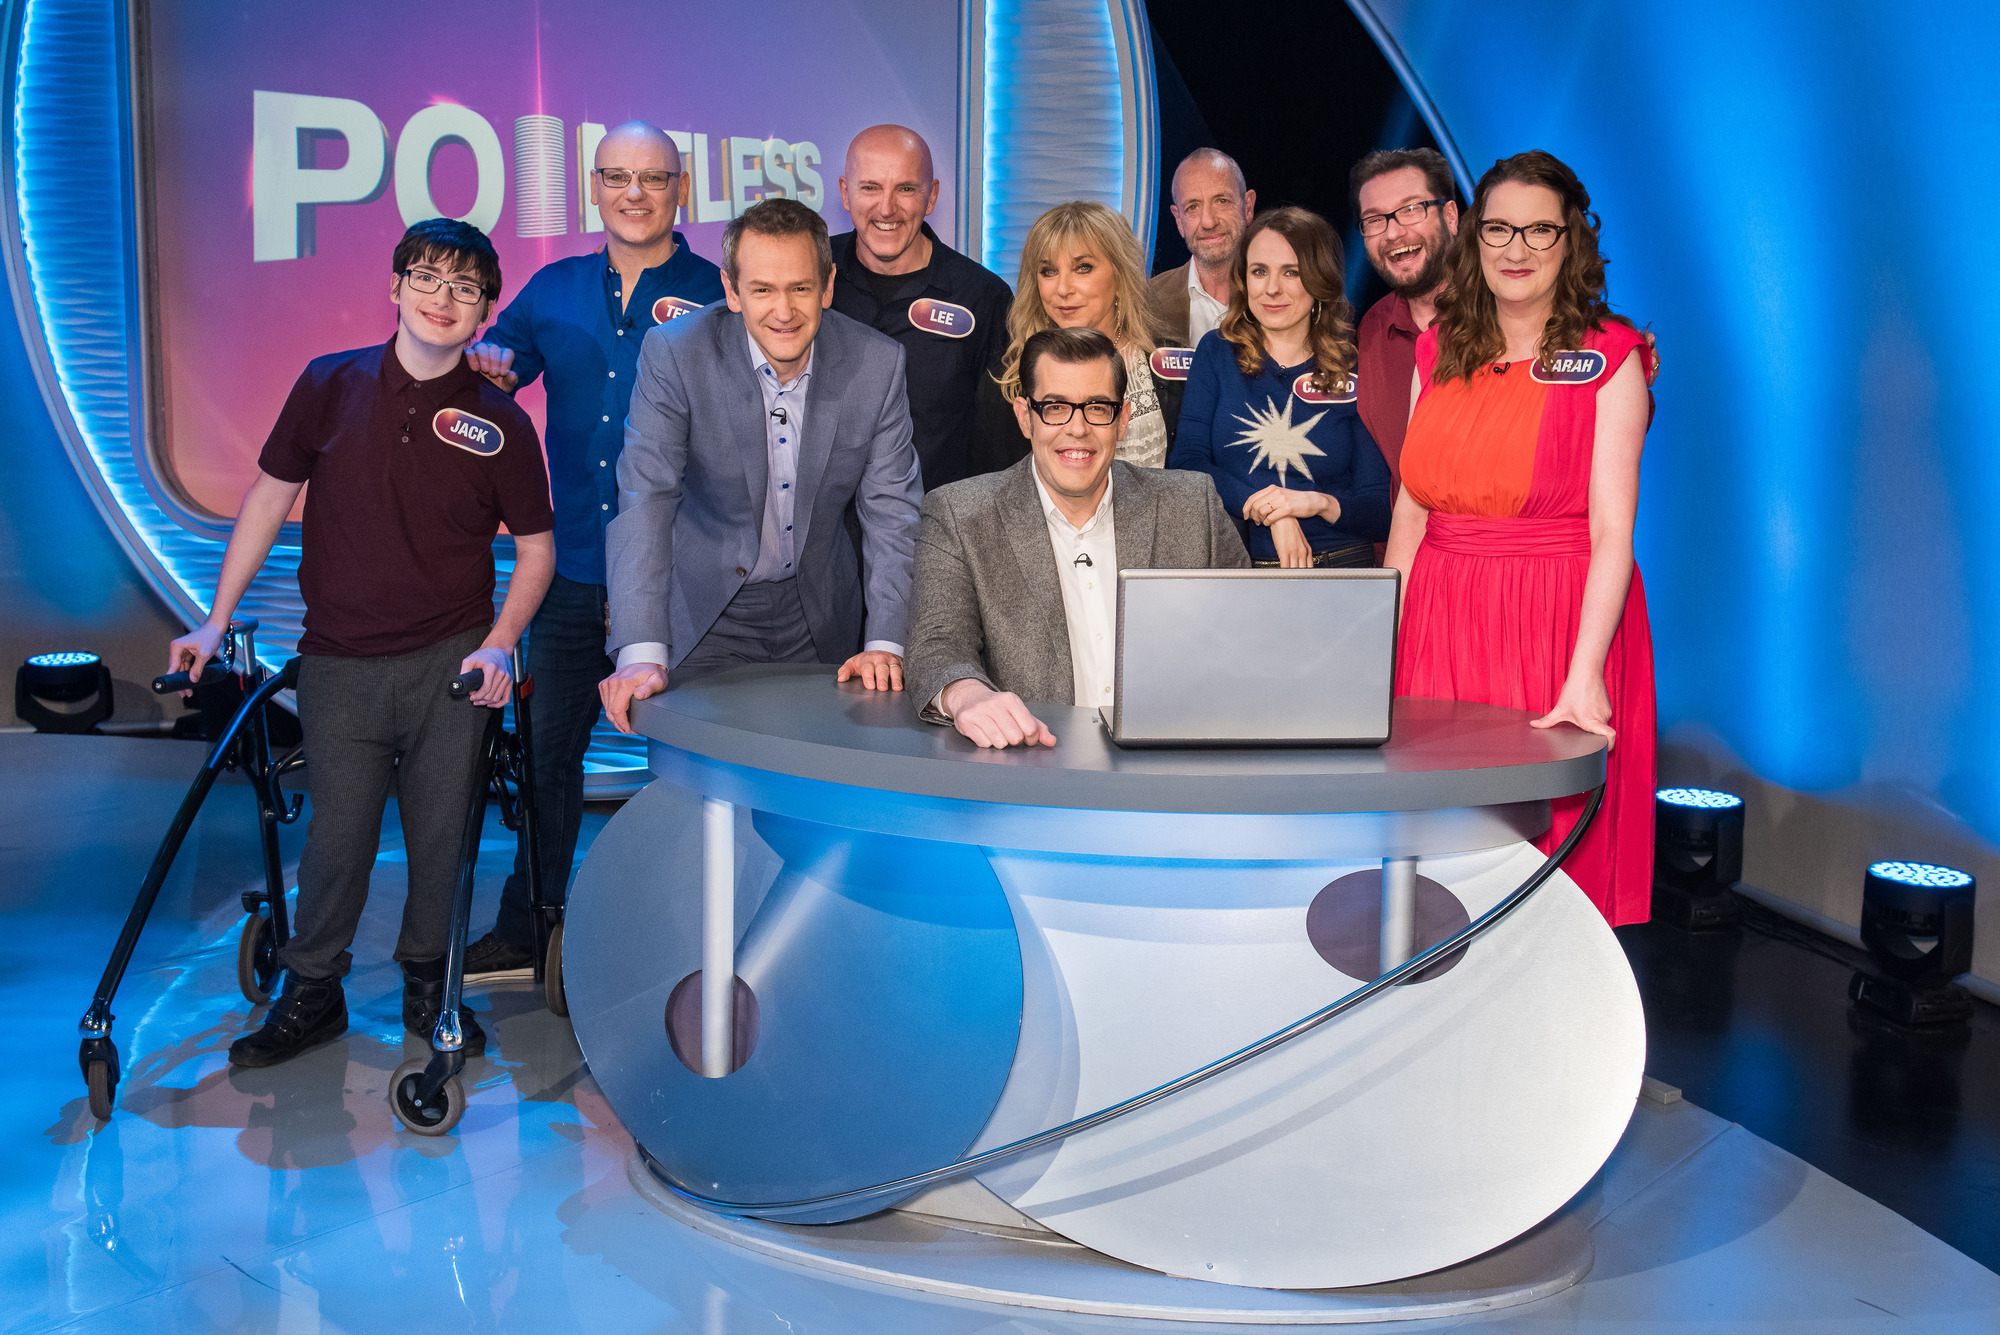 Programme Name: Pointless Celebrities - TX: 10/02/2018 - Episode: Comedians 2 (No. n/a) - Picture Shows: (L-R) Jack Carroll, Terry Alderton, Alexander Armstrong, Lee Hurst, Richard Osman, Helen Lederer, Arthur Smith, Cariad Lloyd, Gary Delaney, Sarah Millican - (C) Endemol Shine Group - Photographer: Mark Yeoman